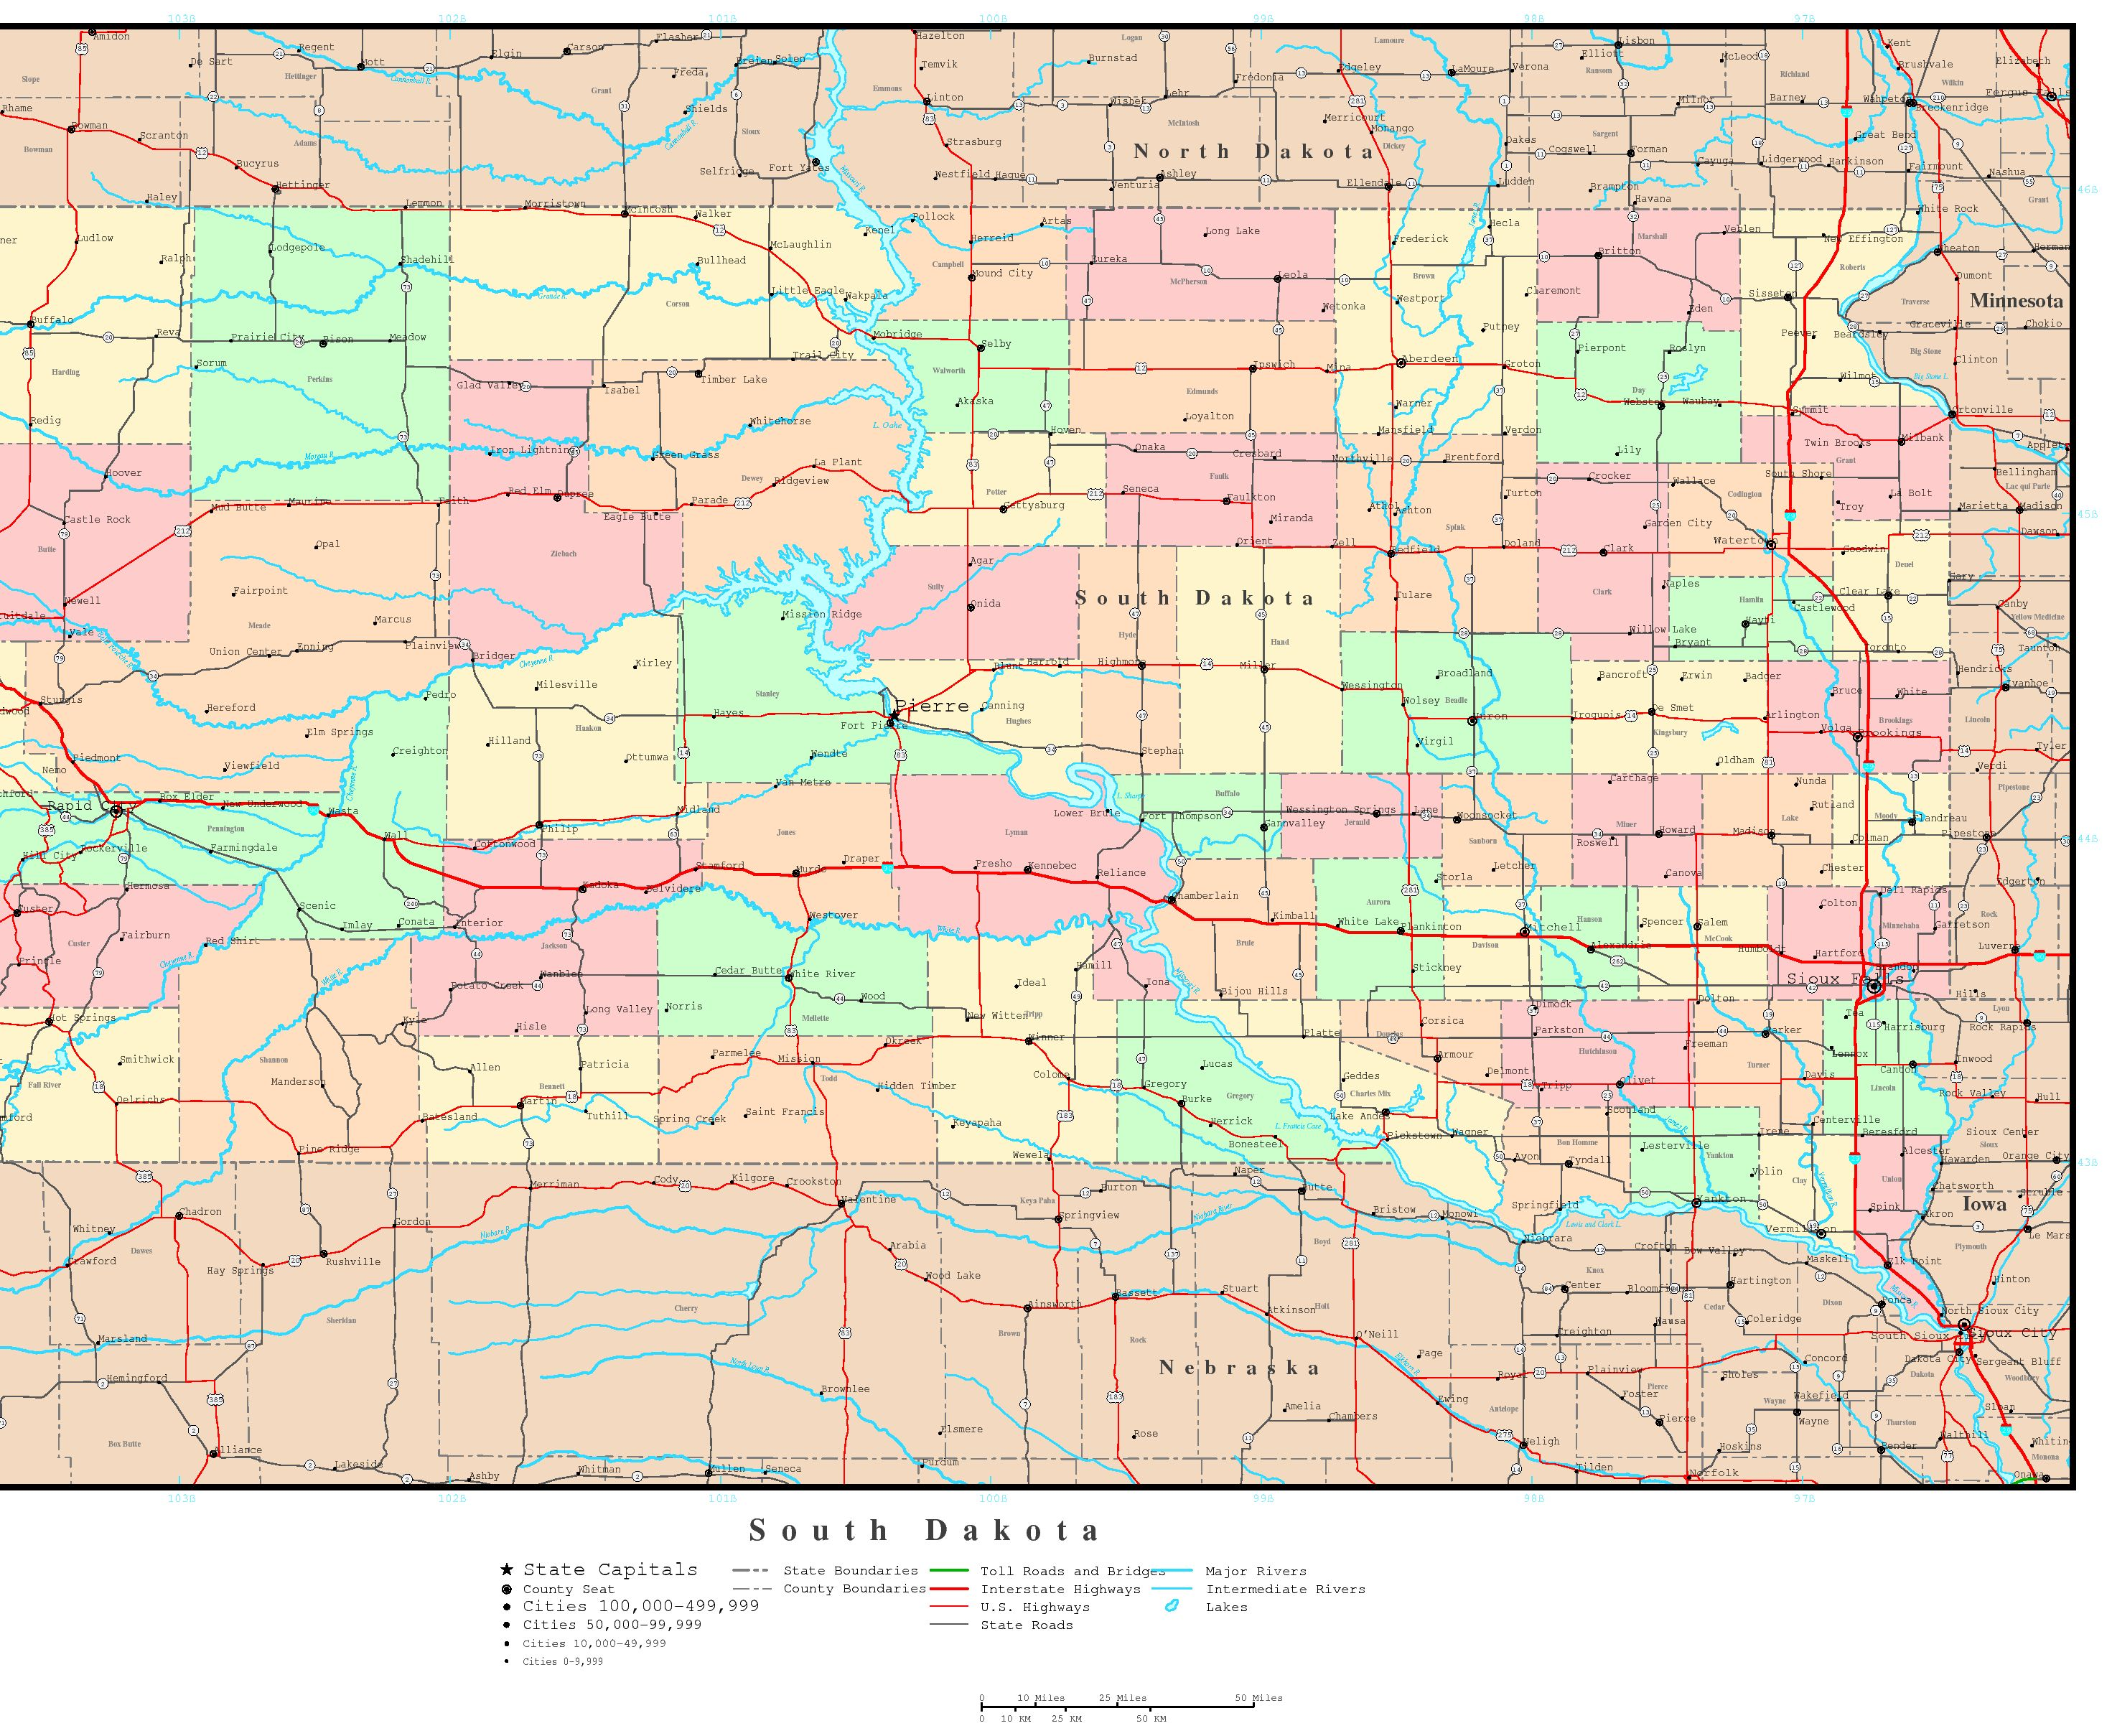 South Dakota Political Map - Political map of minnesota